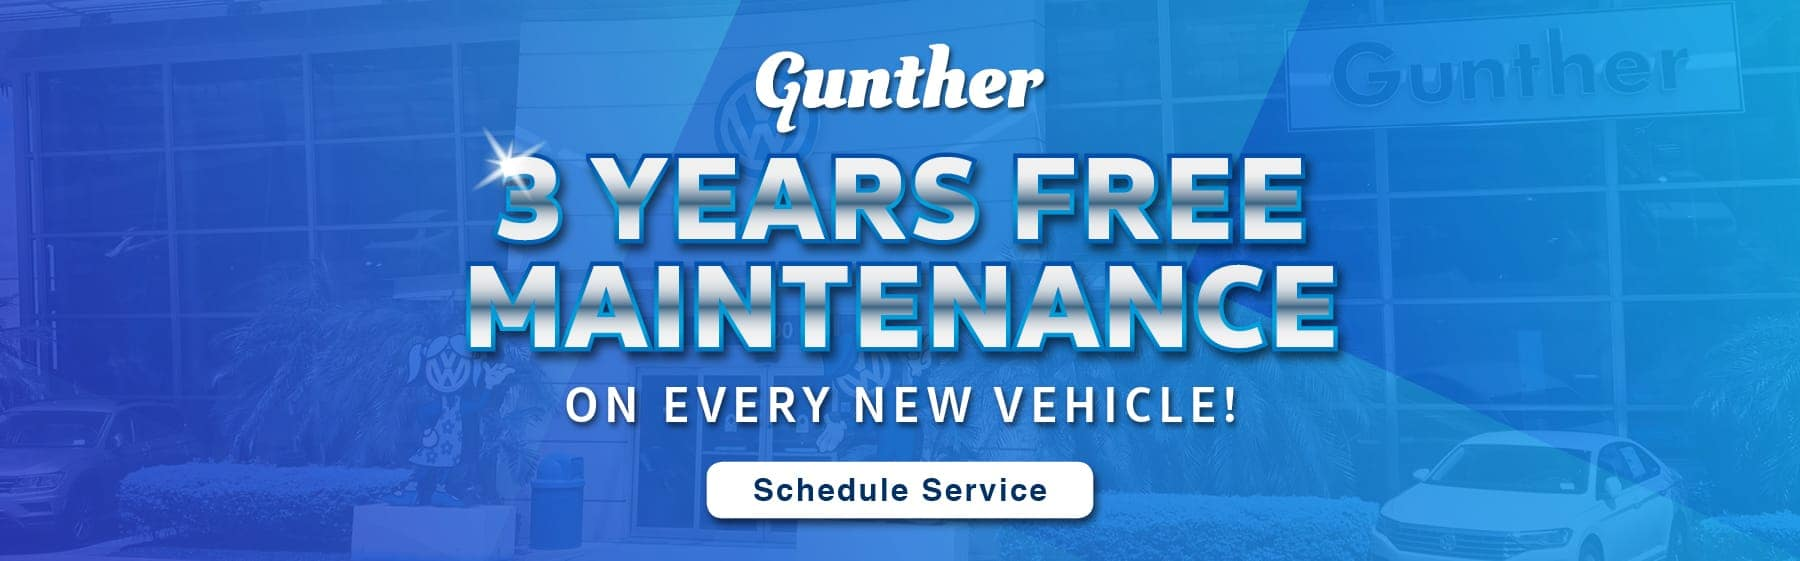 Gunther 3 years free maintenance on every new vehicle! Click here to schedule service.